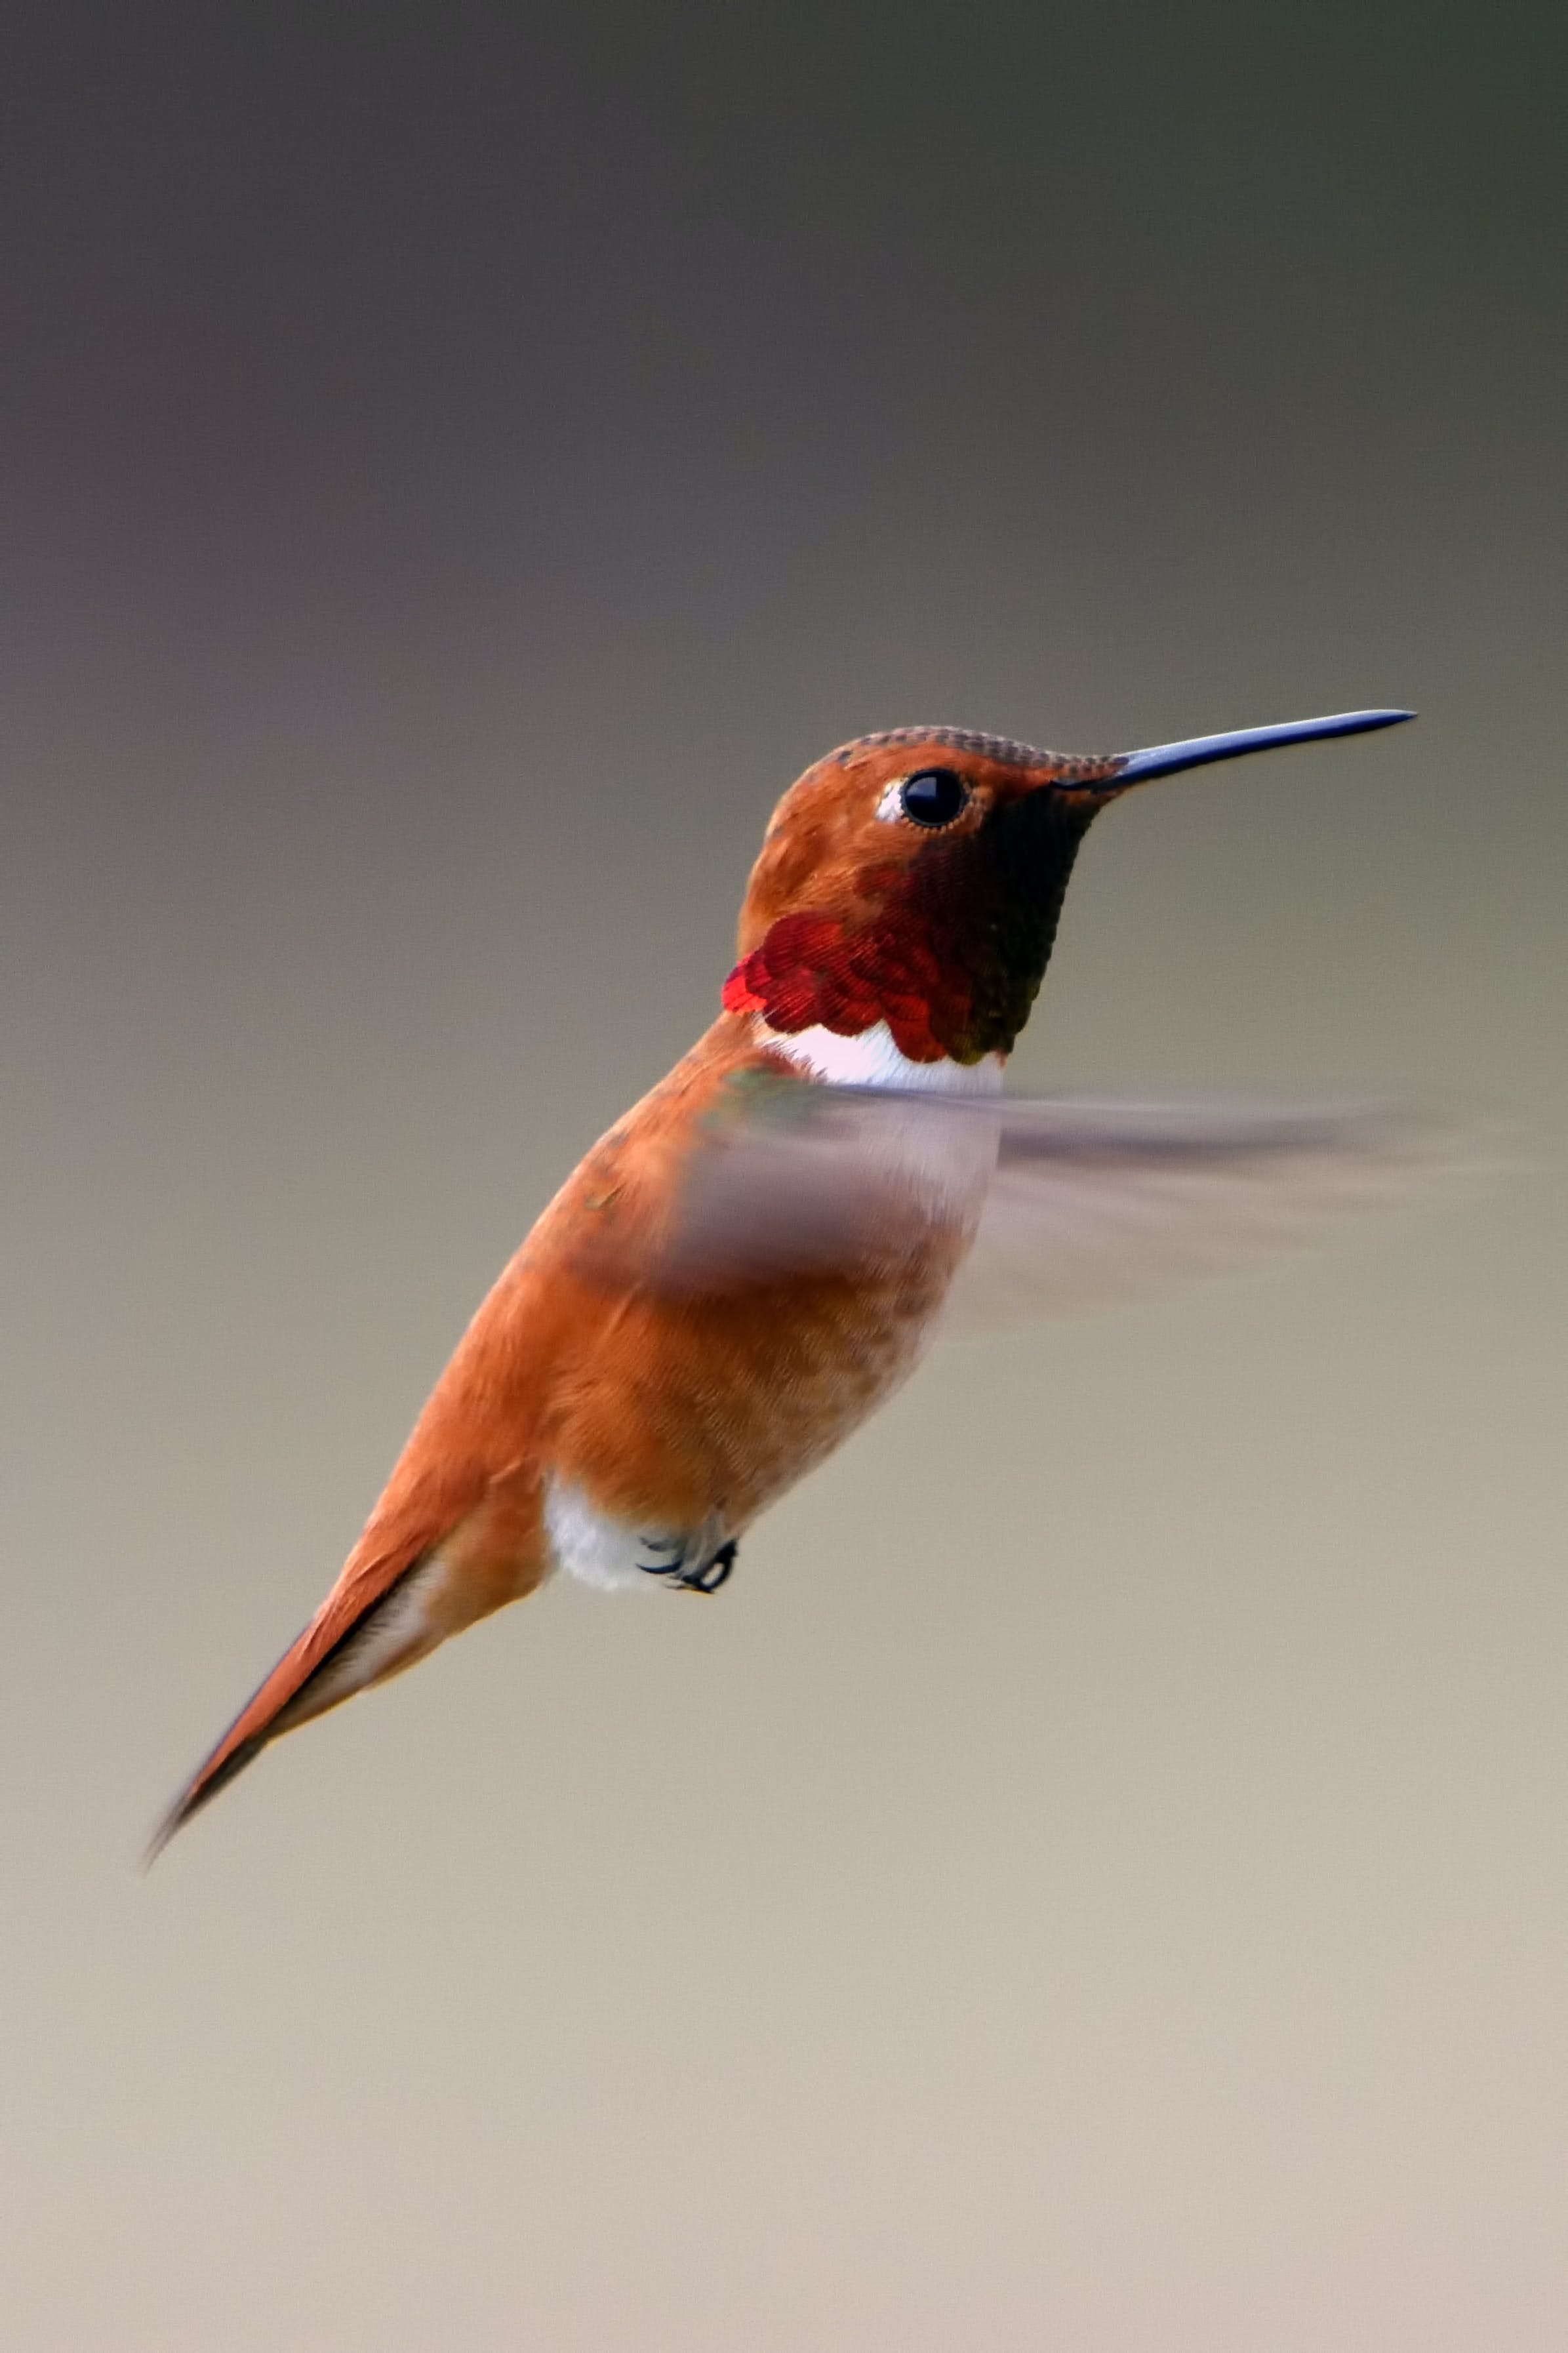 Closeup Photography of Humming Bird